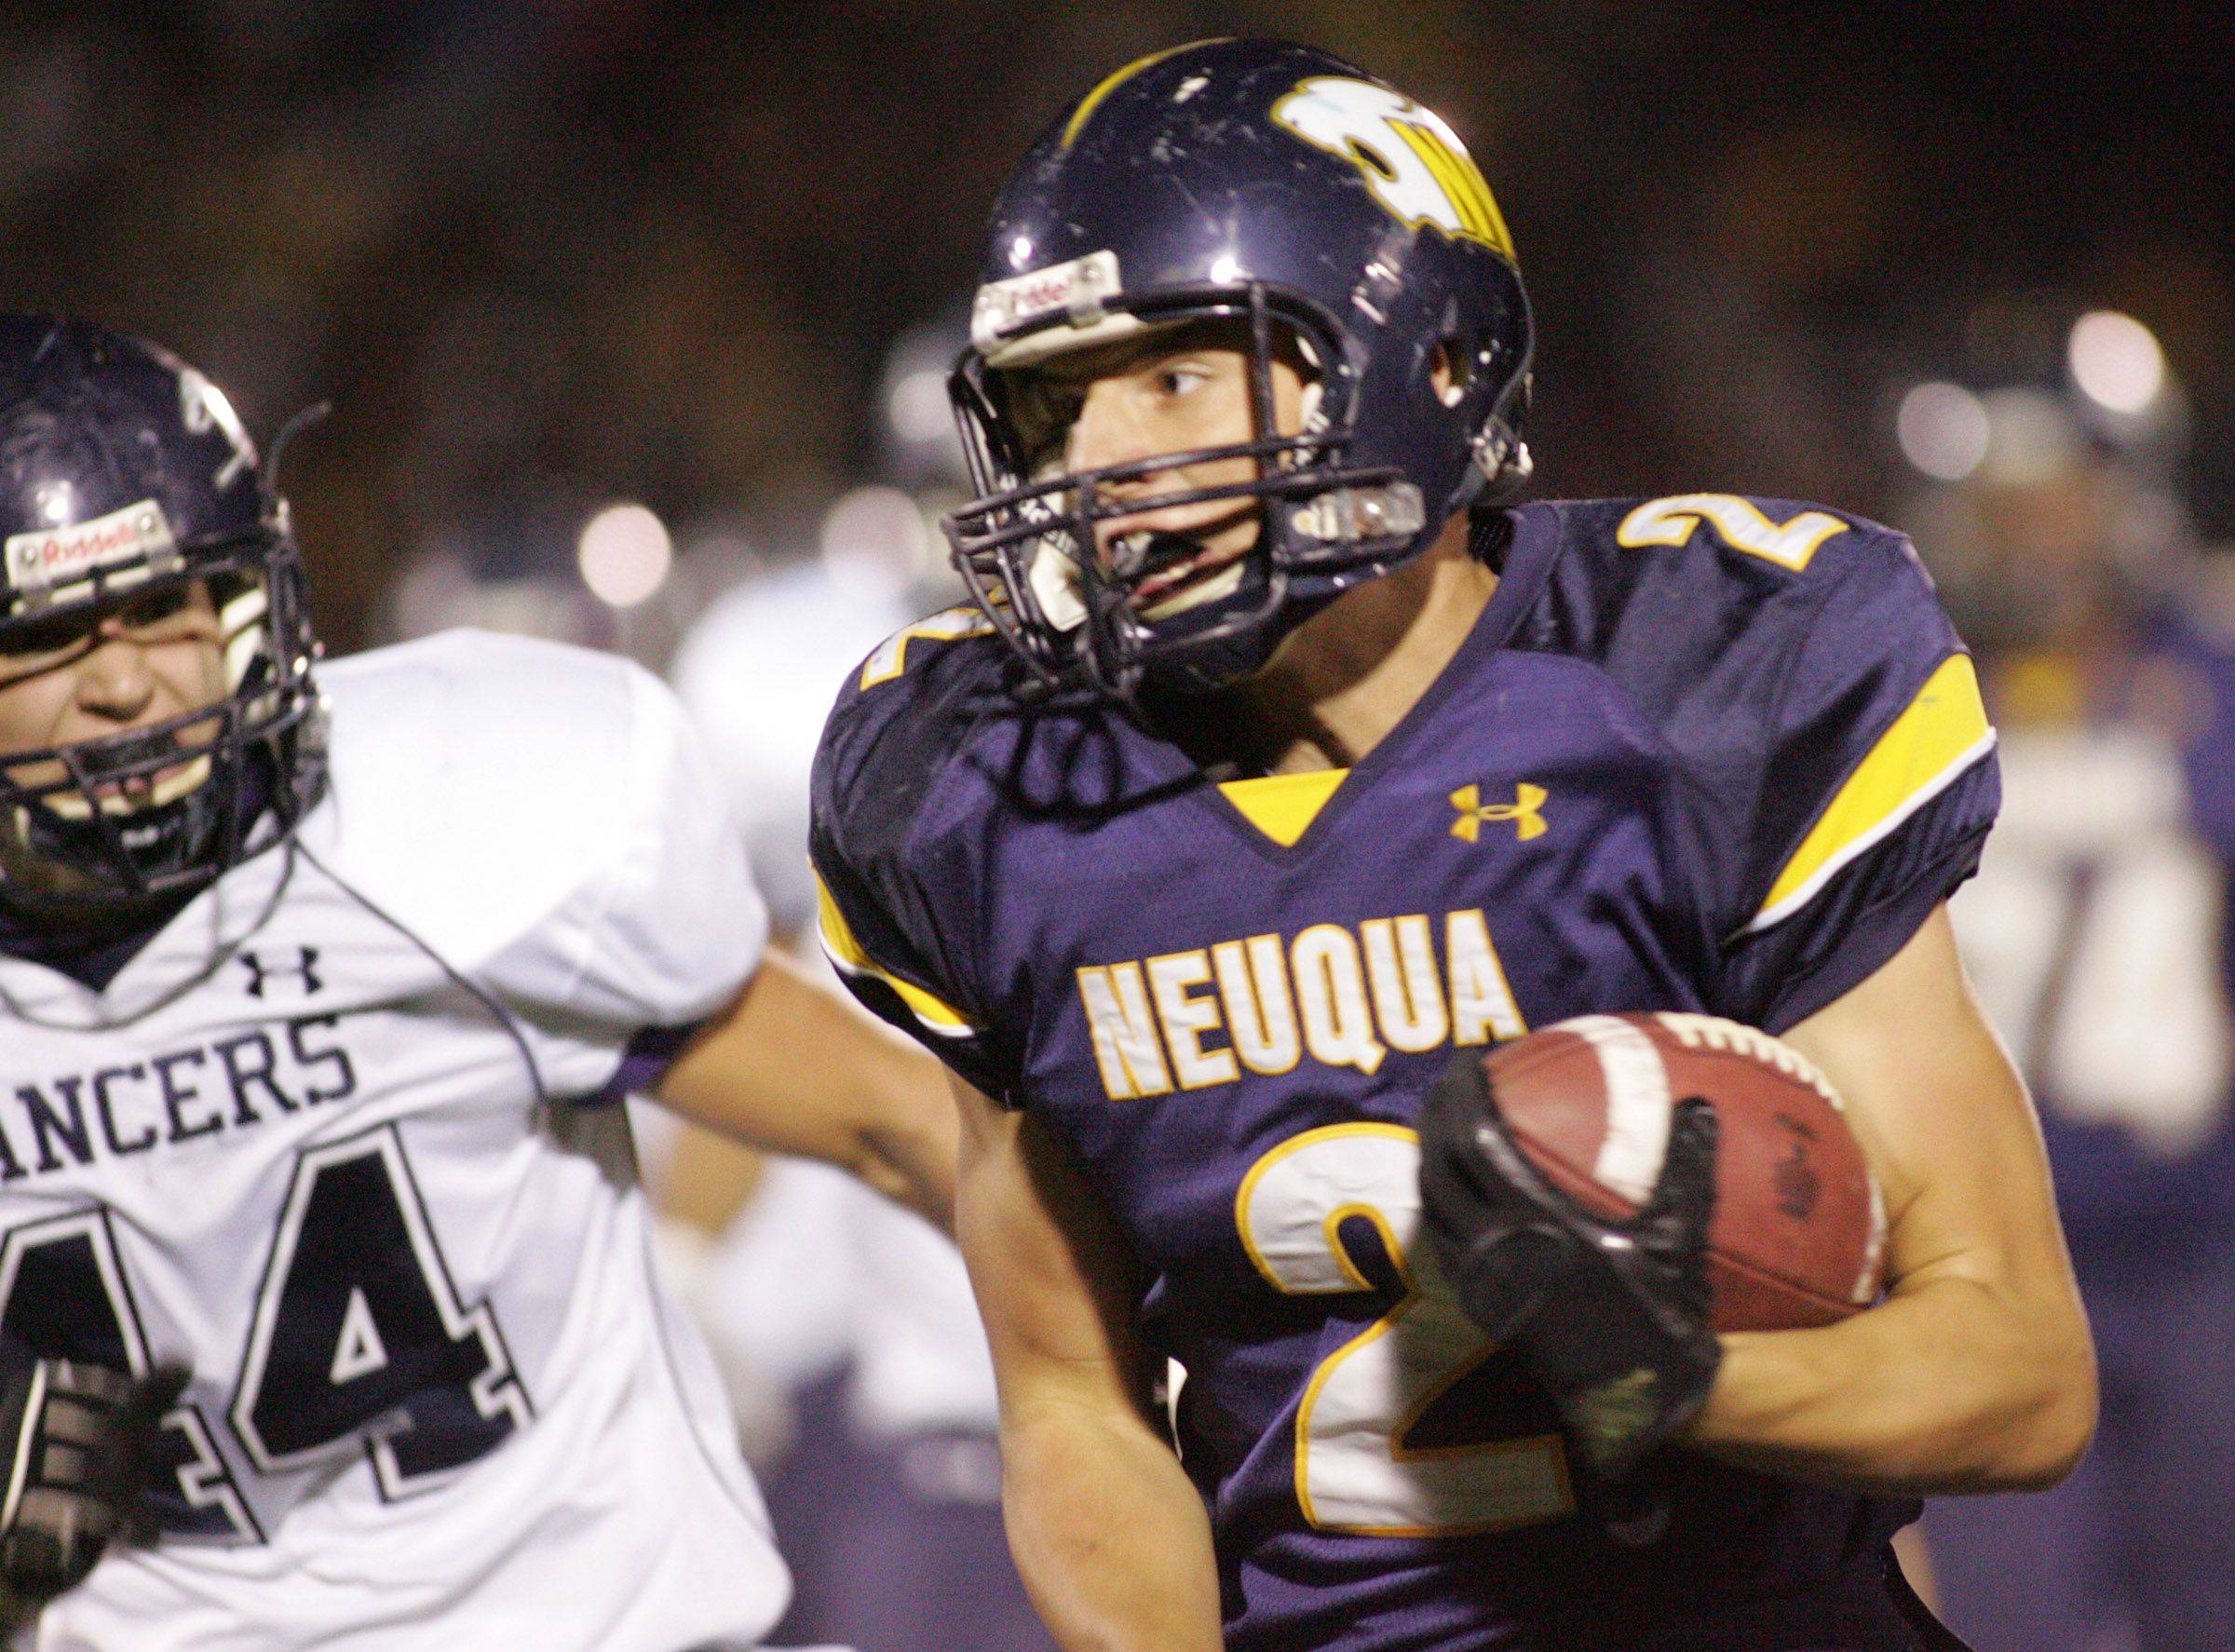 WEEK 9- Jack Norgaard of Neuqua valley runs past Lake Park players .